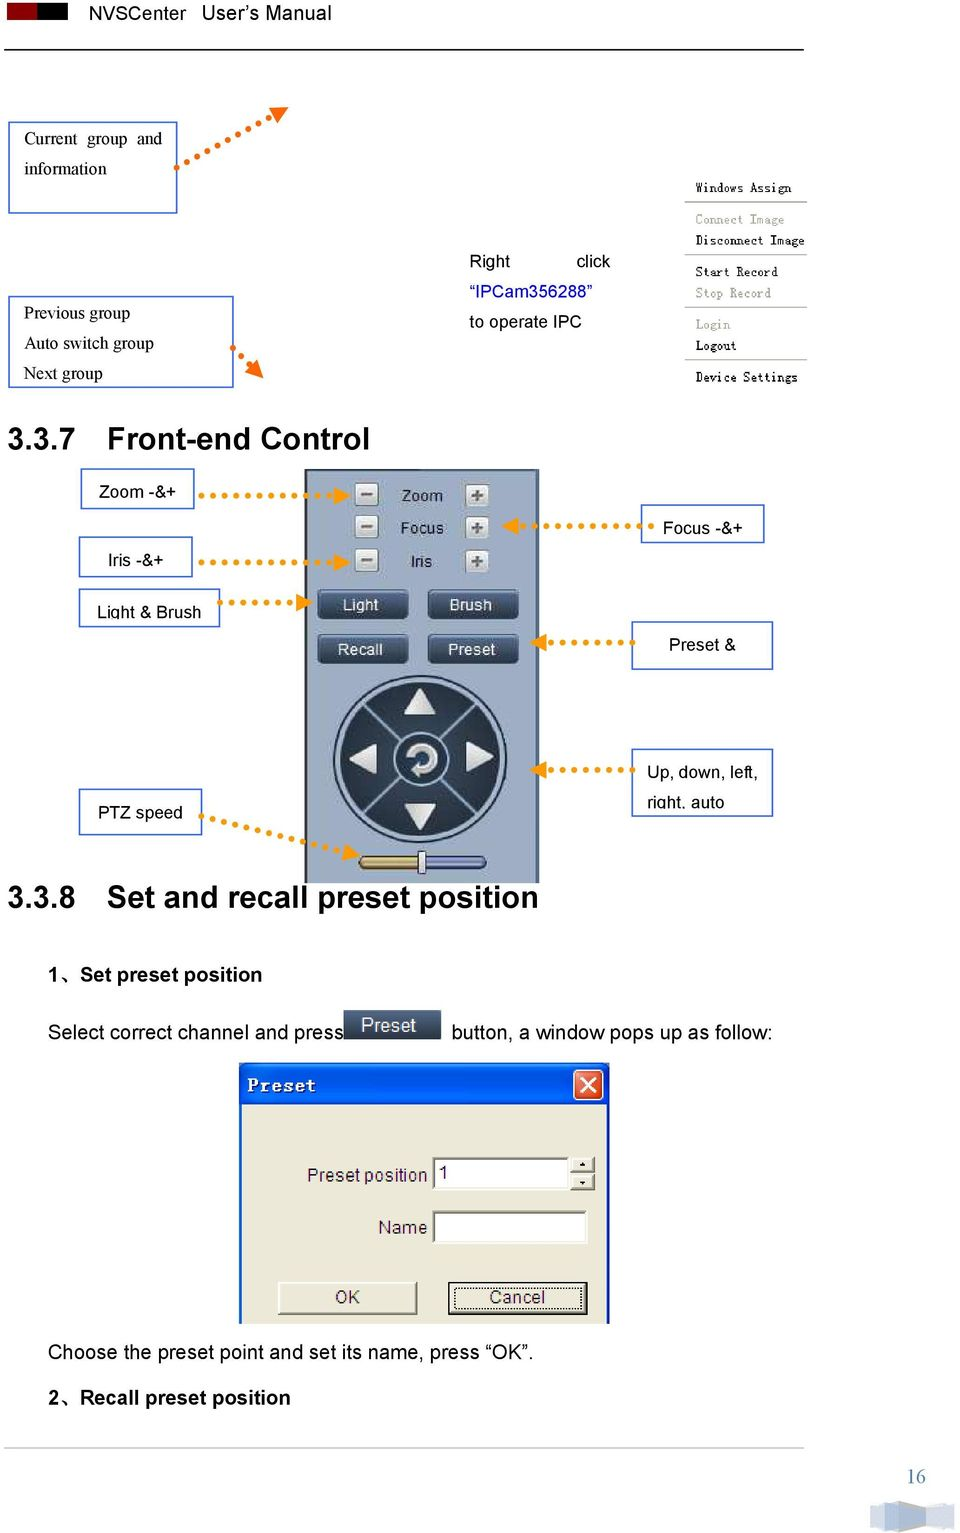 3.7 Front-end Control Zoom -&+ Iris -&+ Focus -&+ Light & Brush Preset & PTZ speed Up, down, left, right,